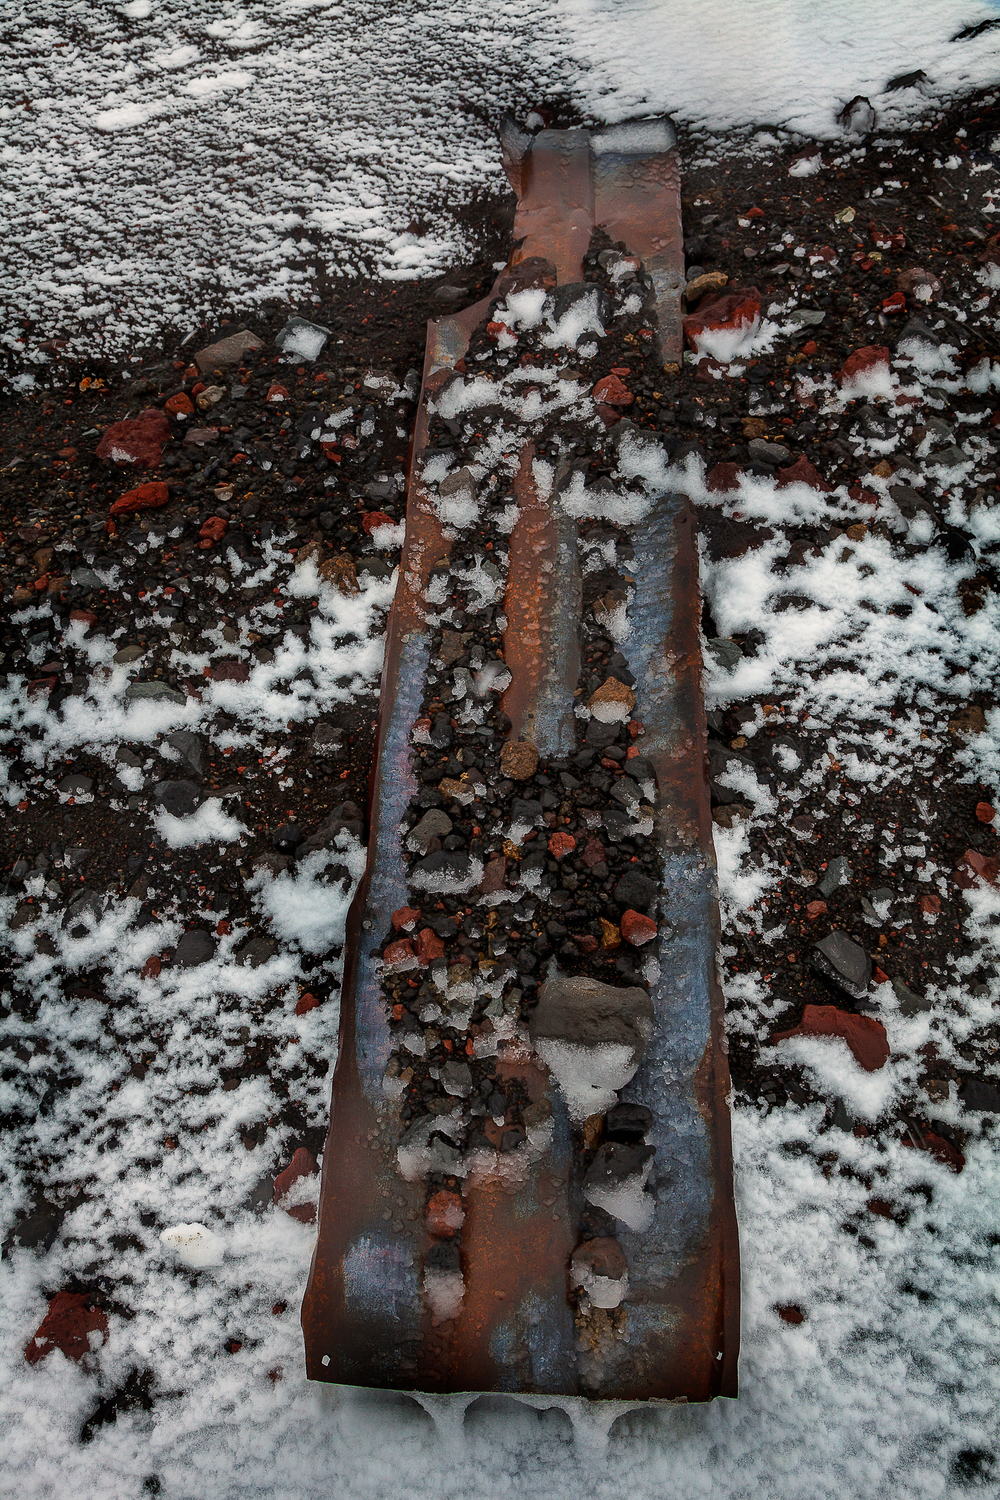 A detail, photographed during a snowstorm, of rusted metal at Port Foster near Whalers Bay on Deception Island.